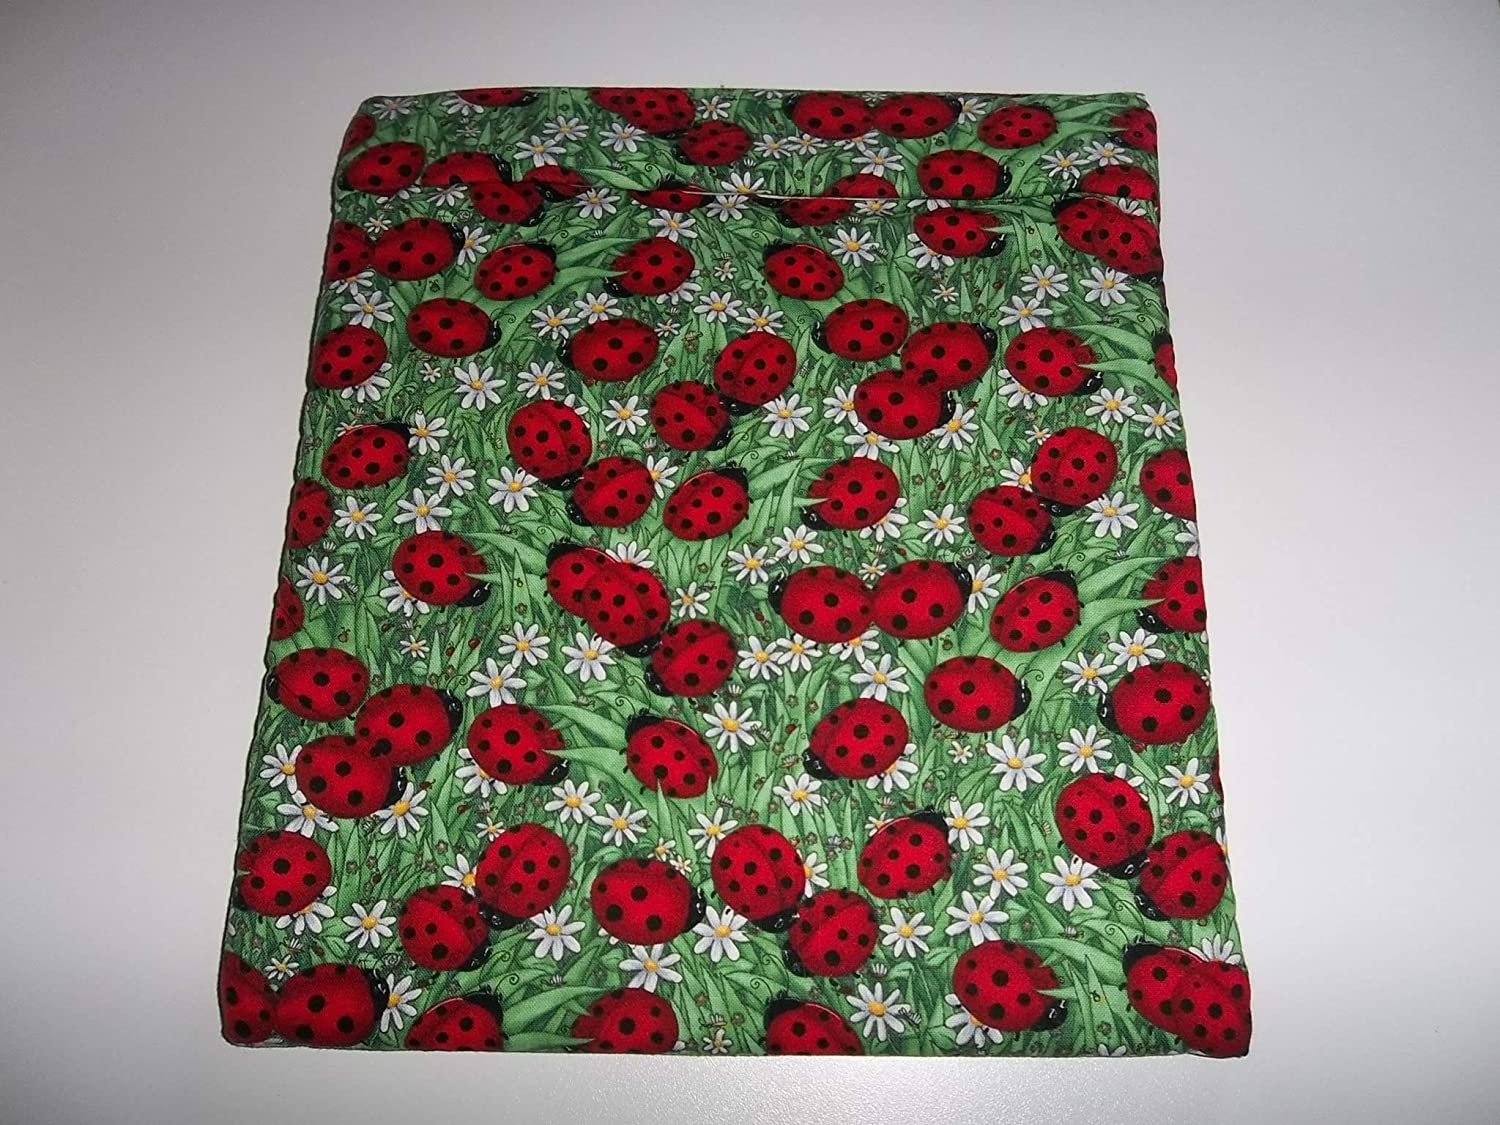 Microwave Potato Ranking TOP11 Bag Red Ladybugs Baked All Large New sales Cotton